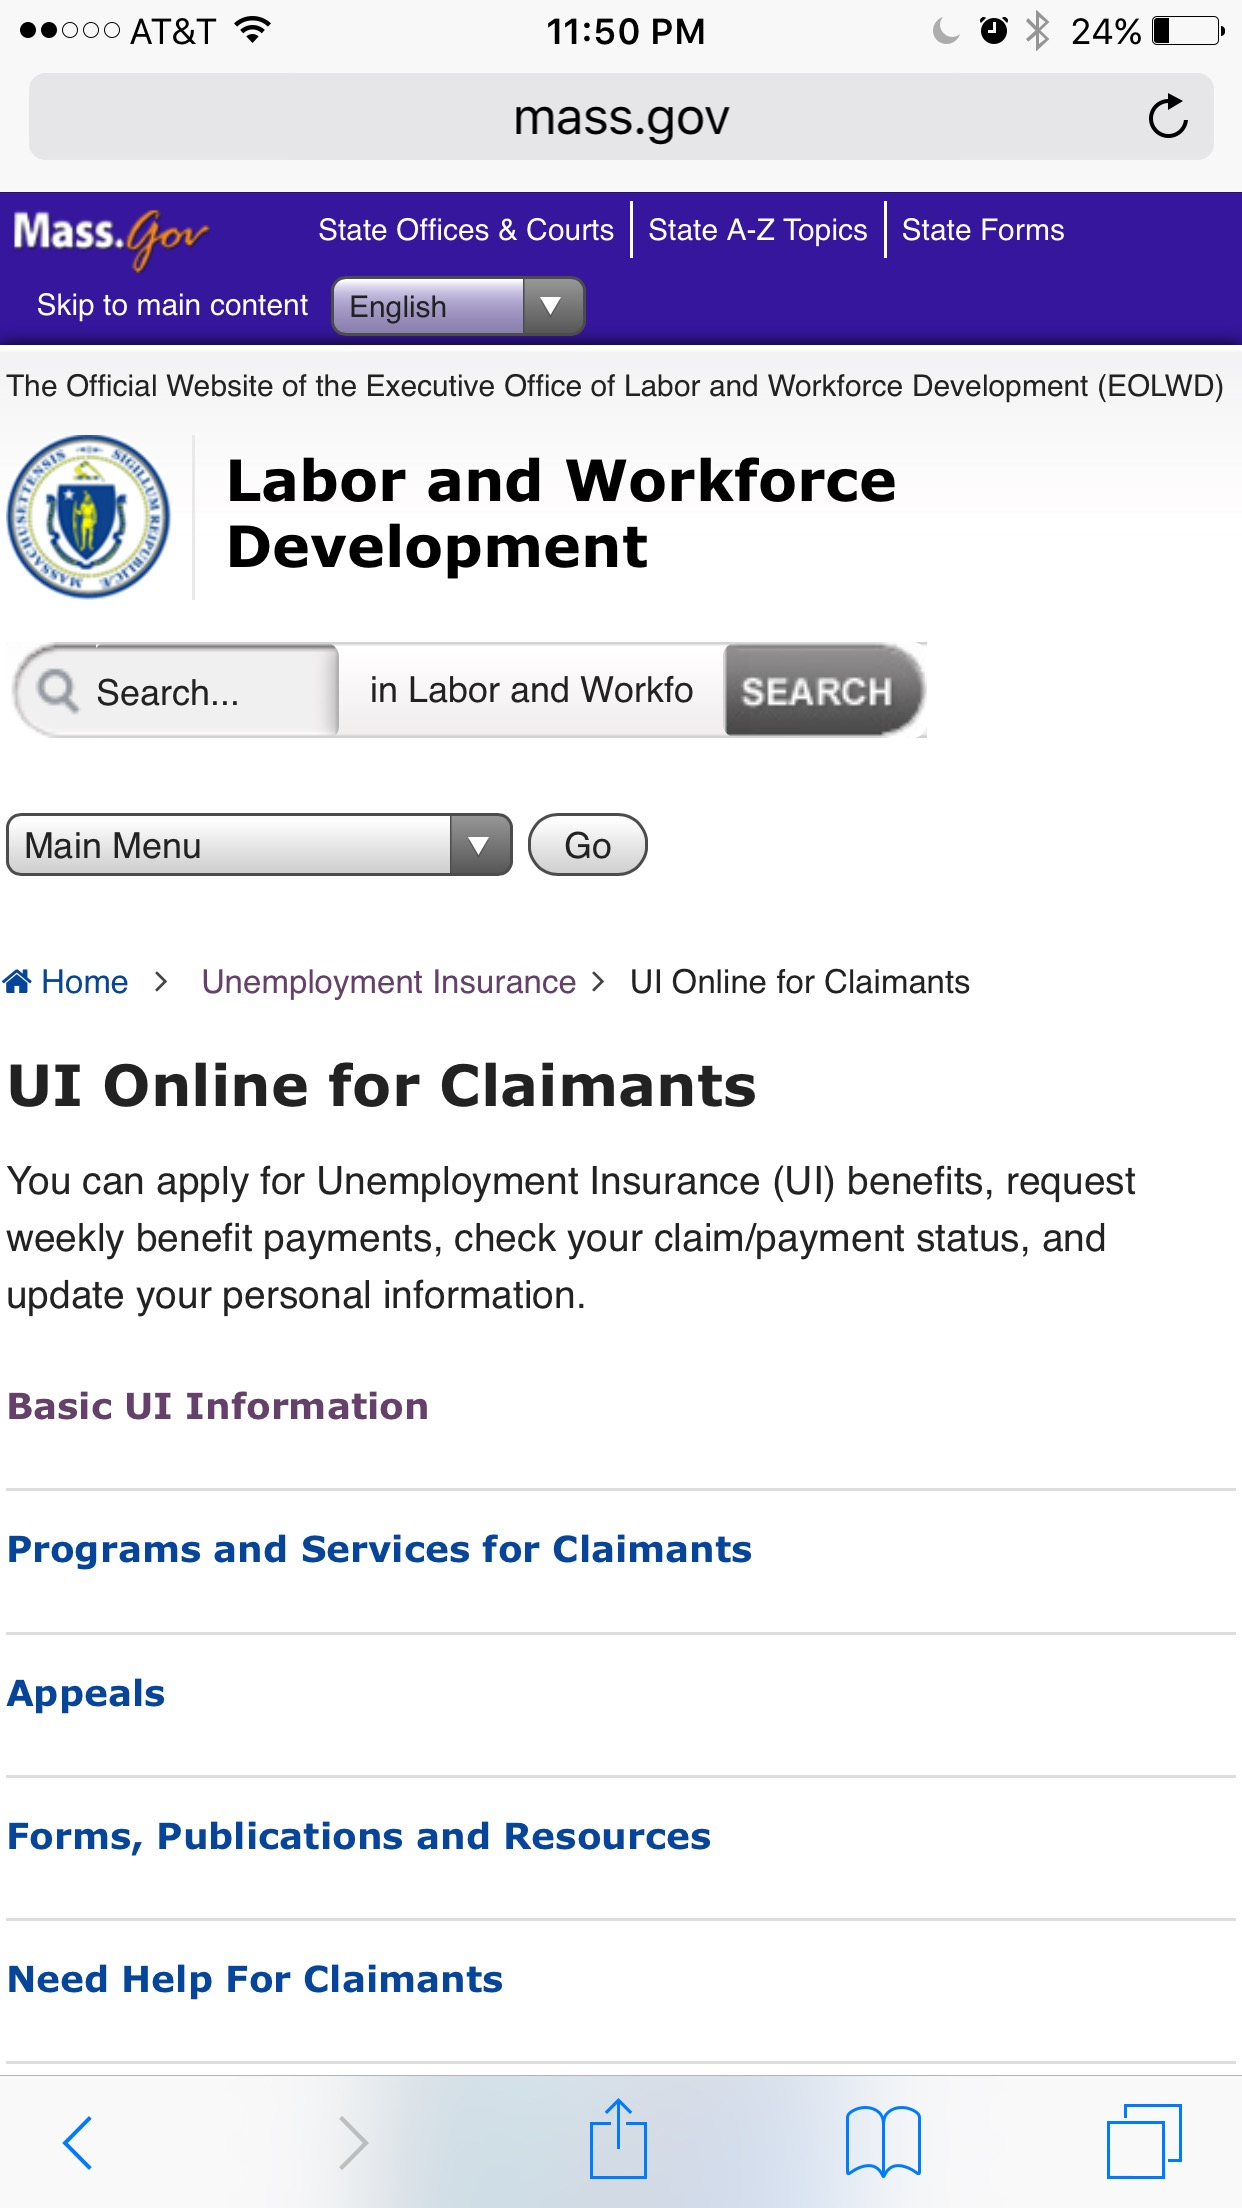 The landing page gives every indication that applying for unemployment is possible, but no indication of how.